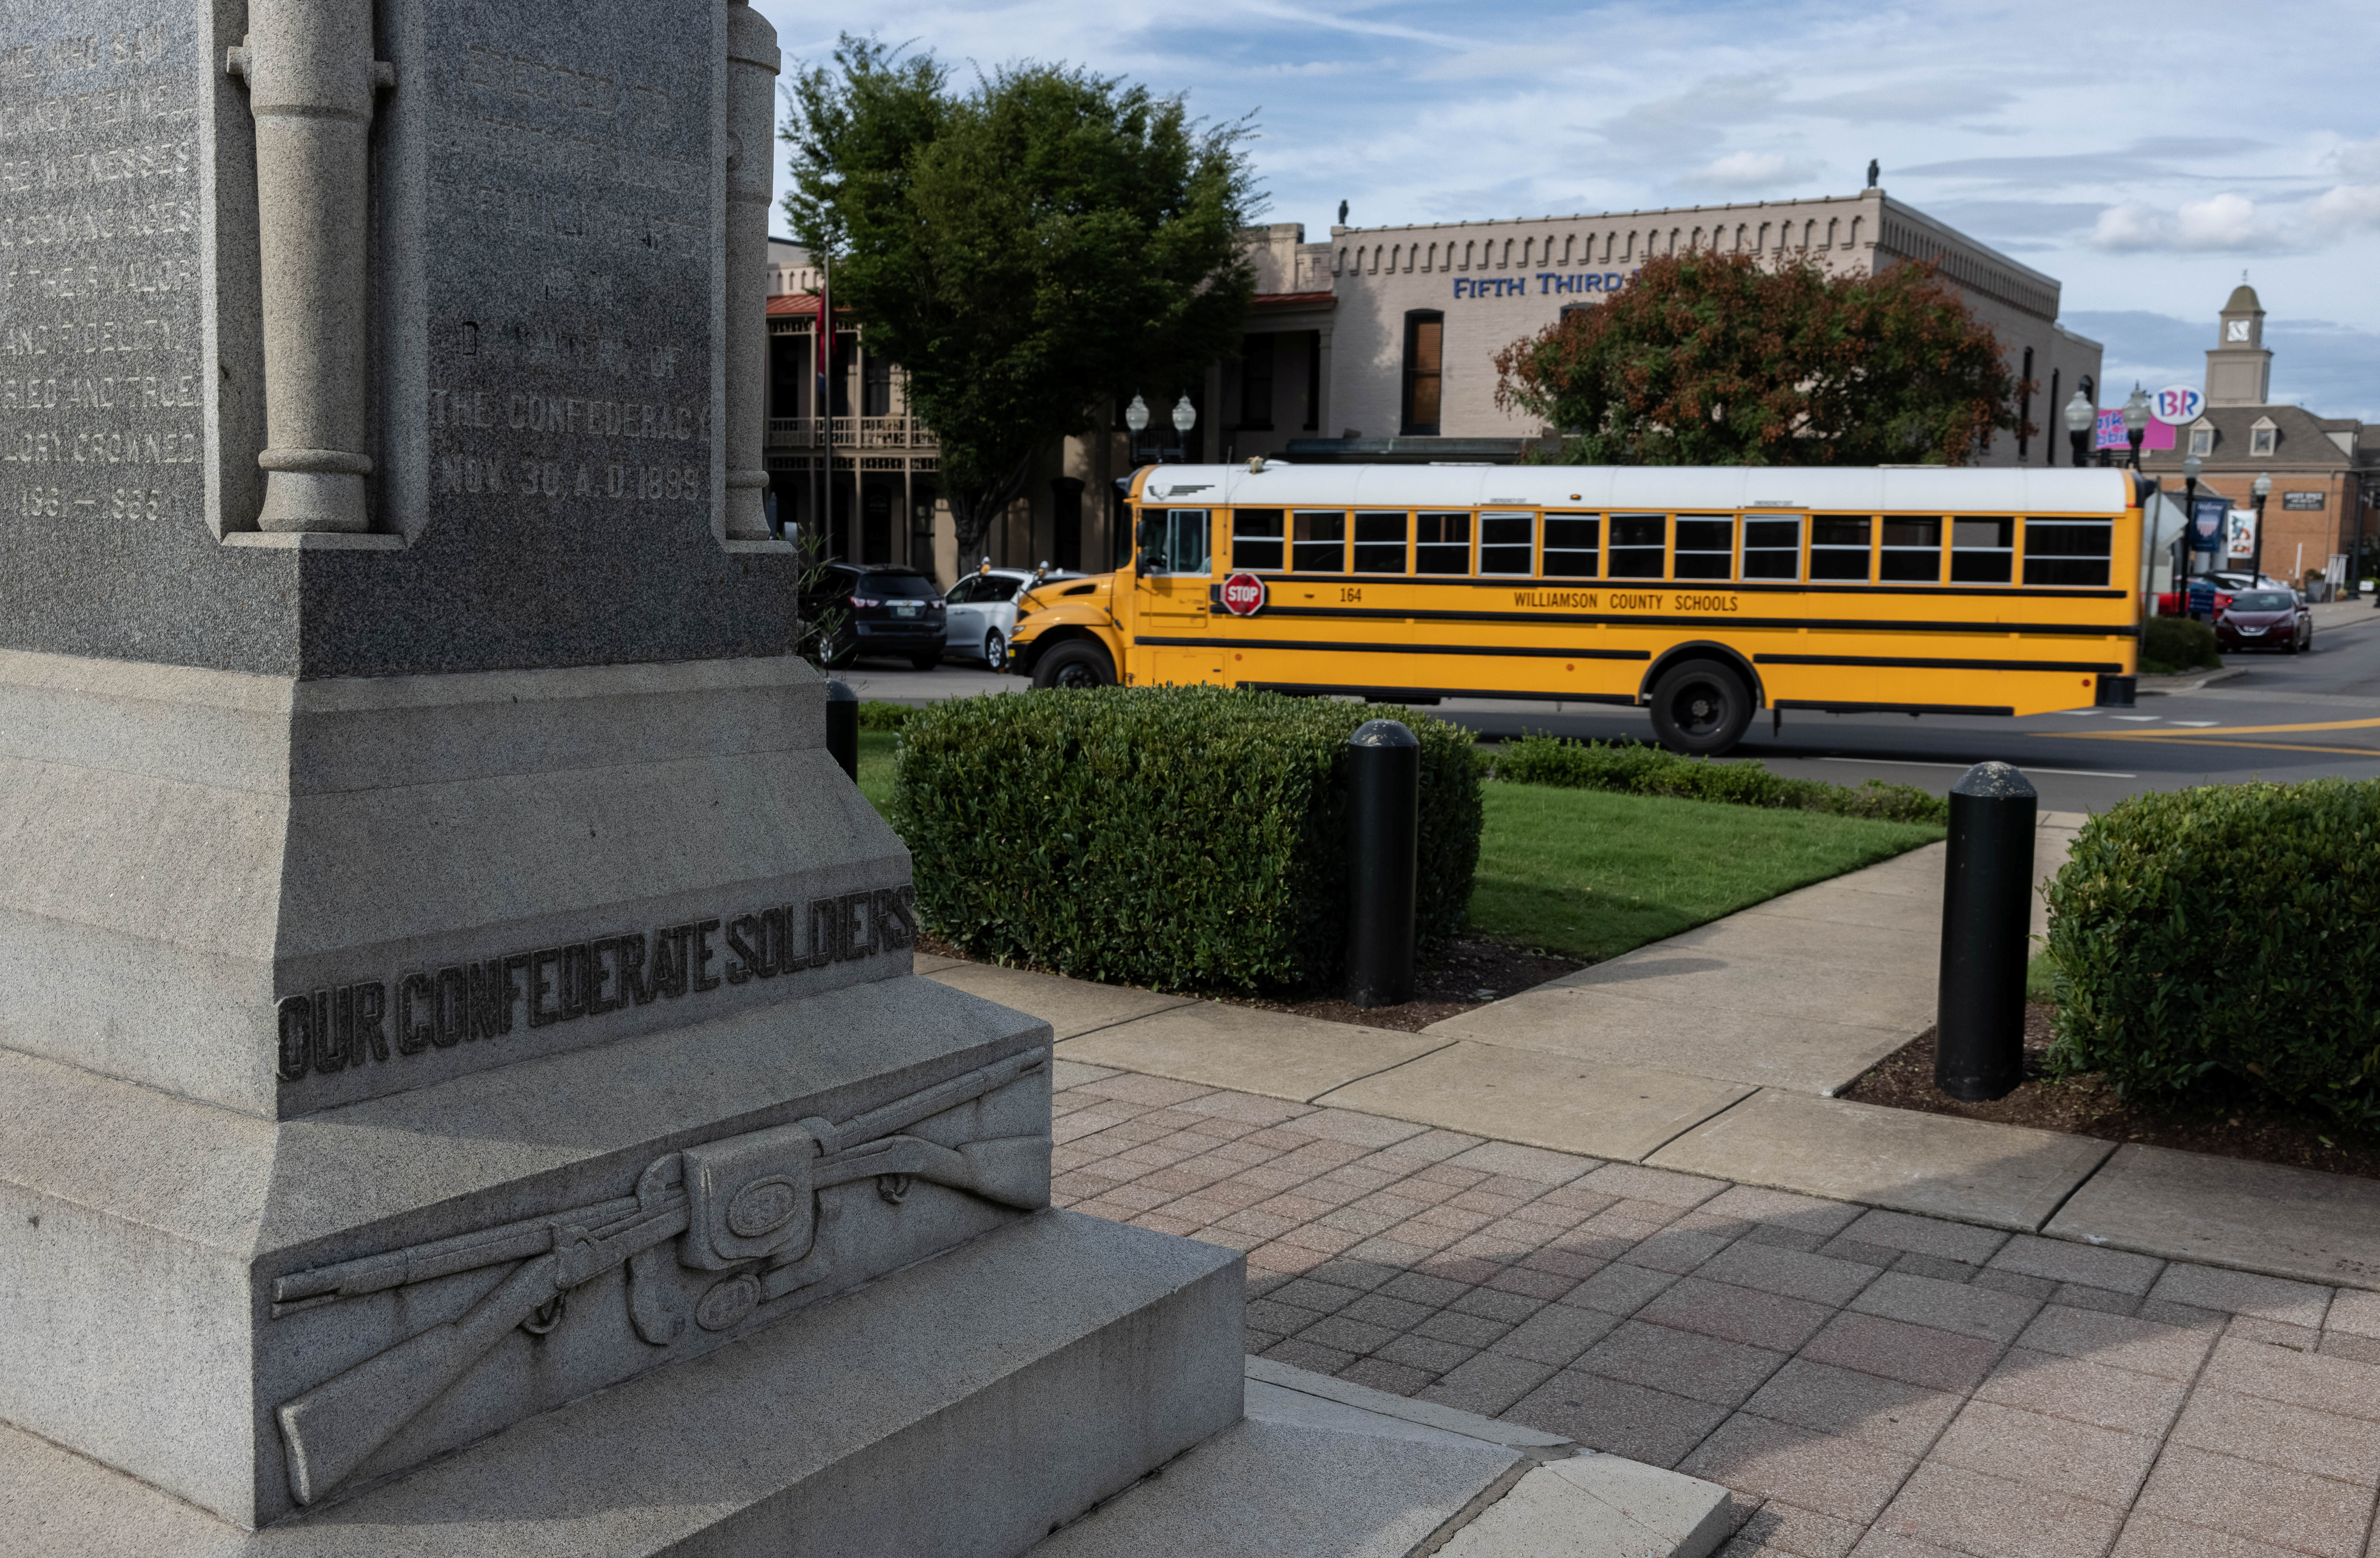 A Williamson County School bus drives past the Confederate monument which stands in the center of the town square in Franklin, Tennessee, U.S., atop the former slave market which operated in the mid-19th century and commemorates the Confederate soldiers who died in the battle of Franklin during the Civil War, August 17, 2021. Picture taken August 17, 2021. REUTERS/Evelyn Hockstein